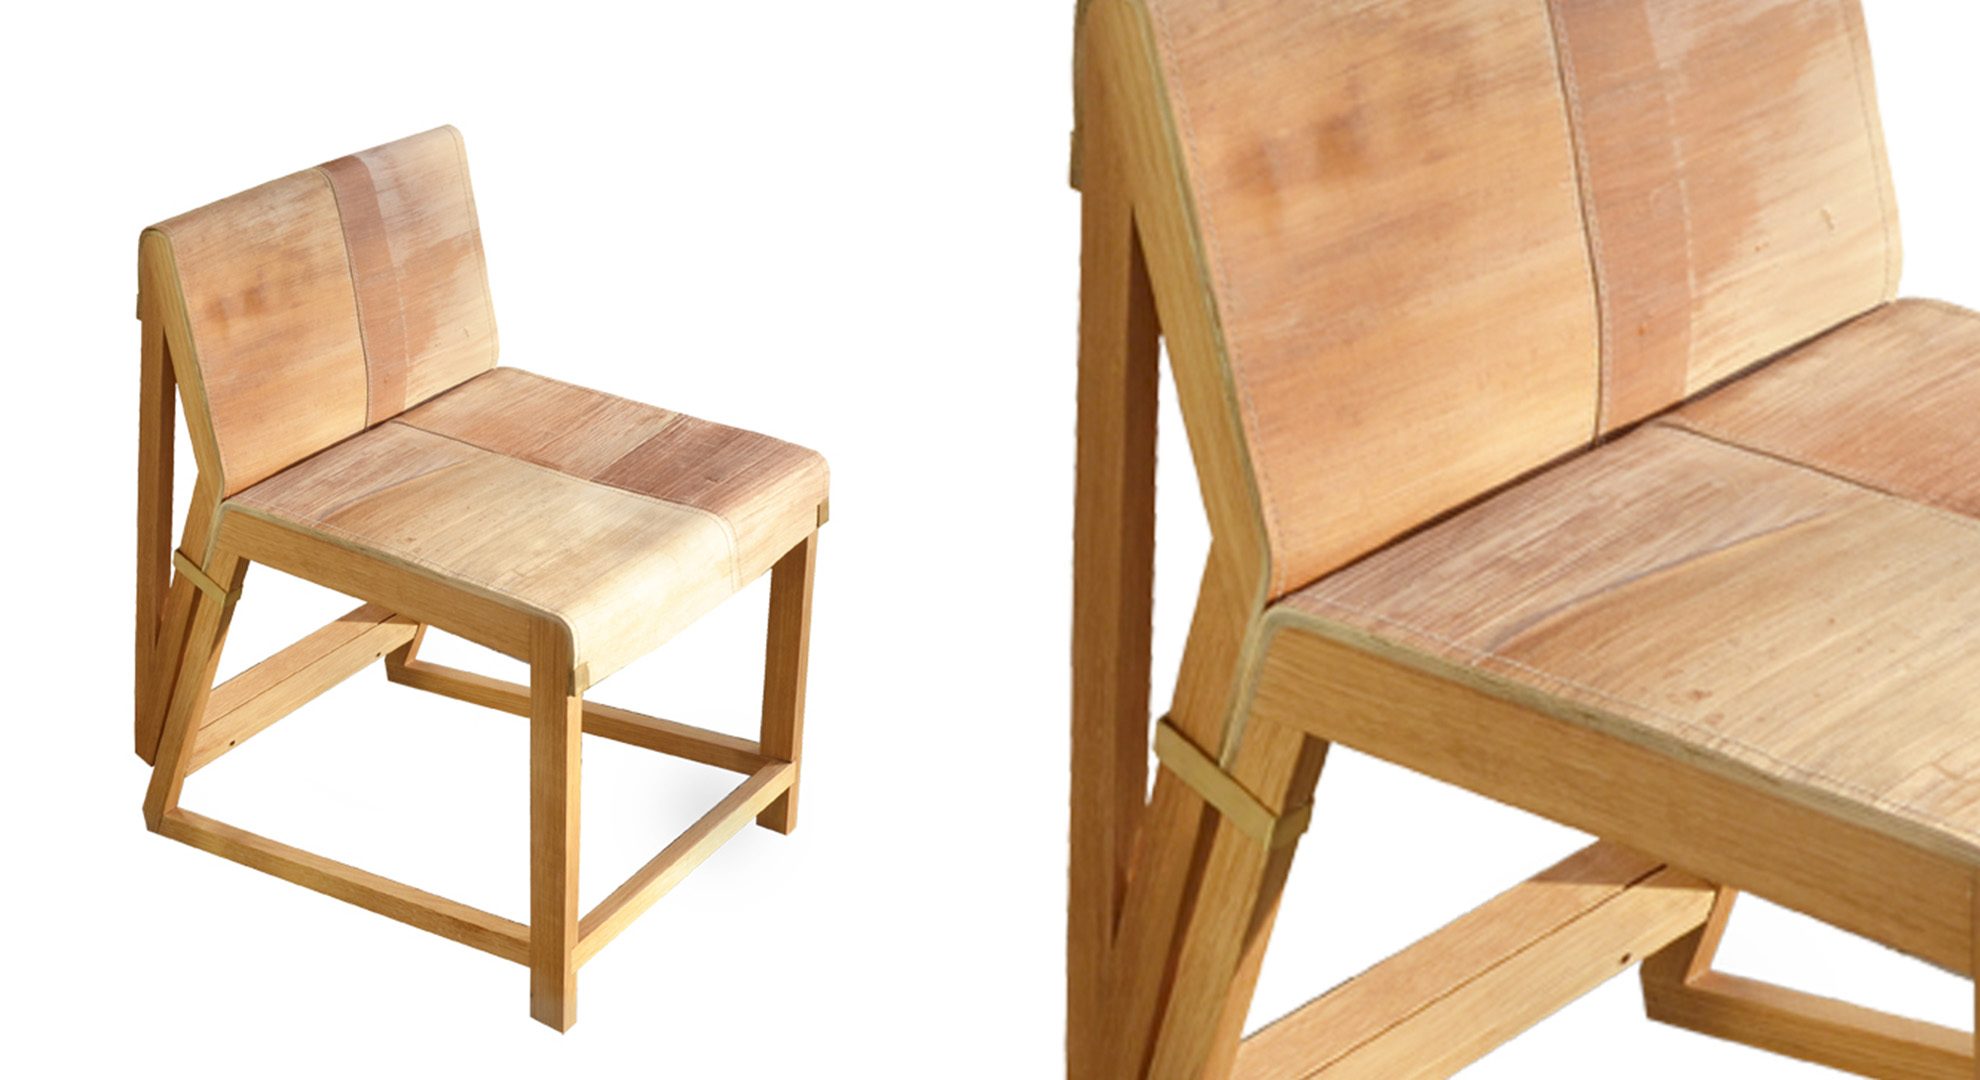 Eco designed chair by Studio Tjeerd Veenhoven